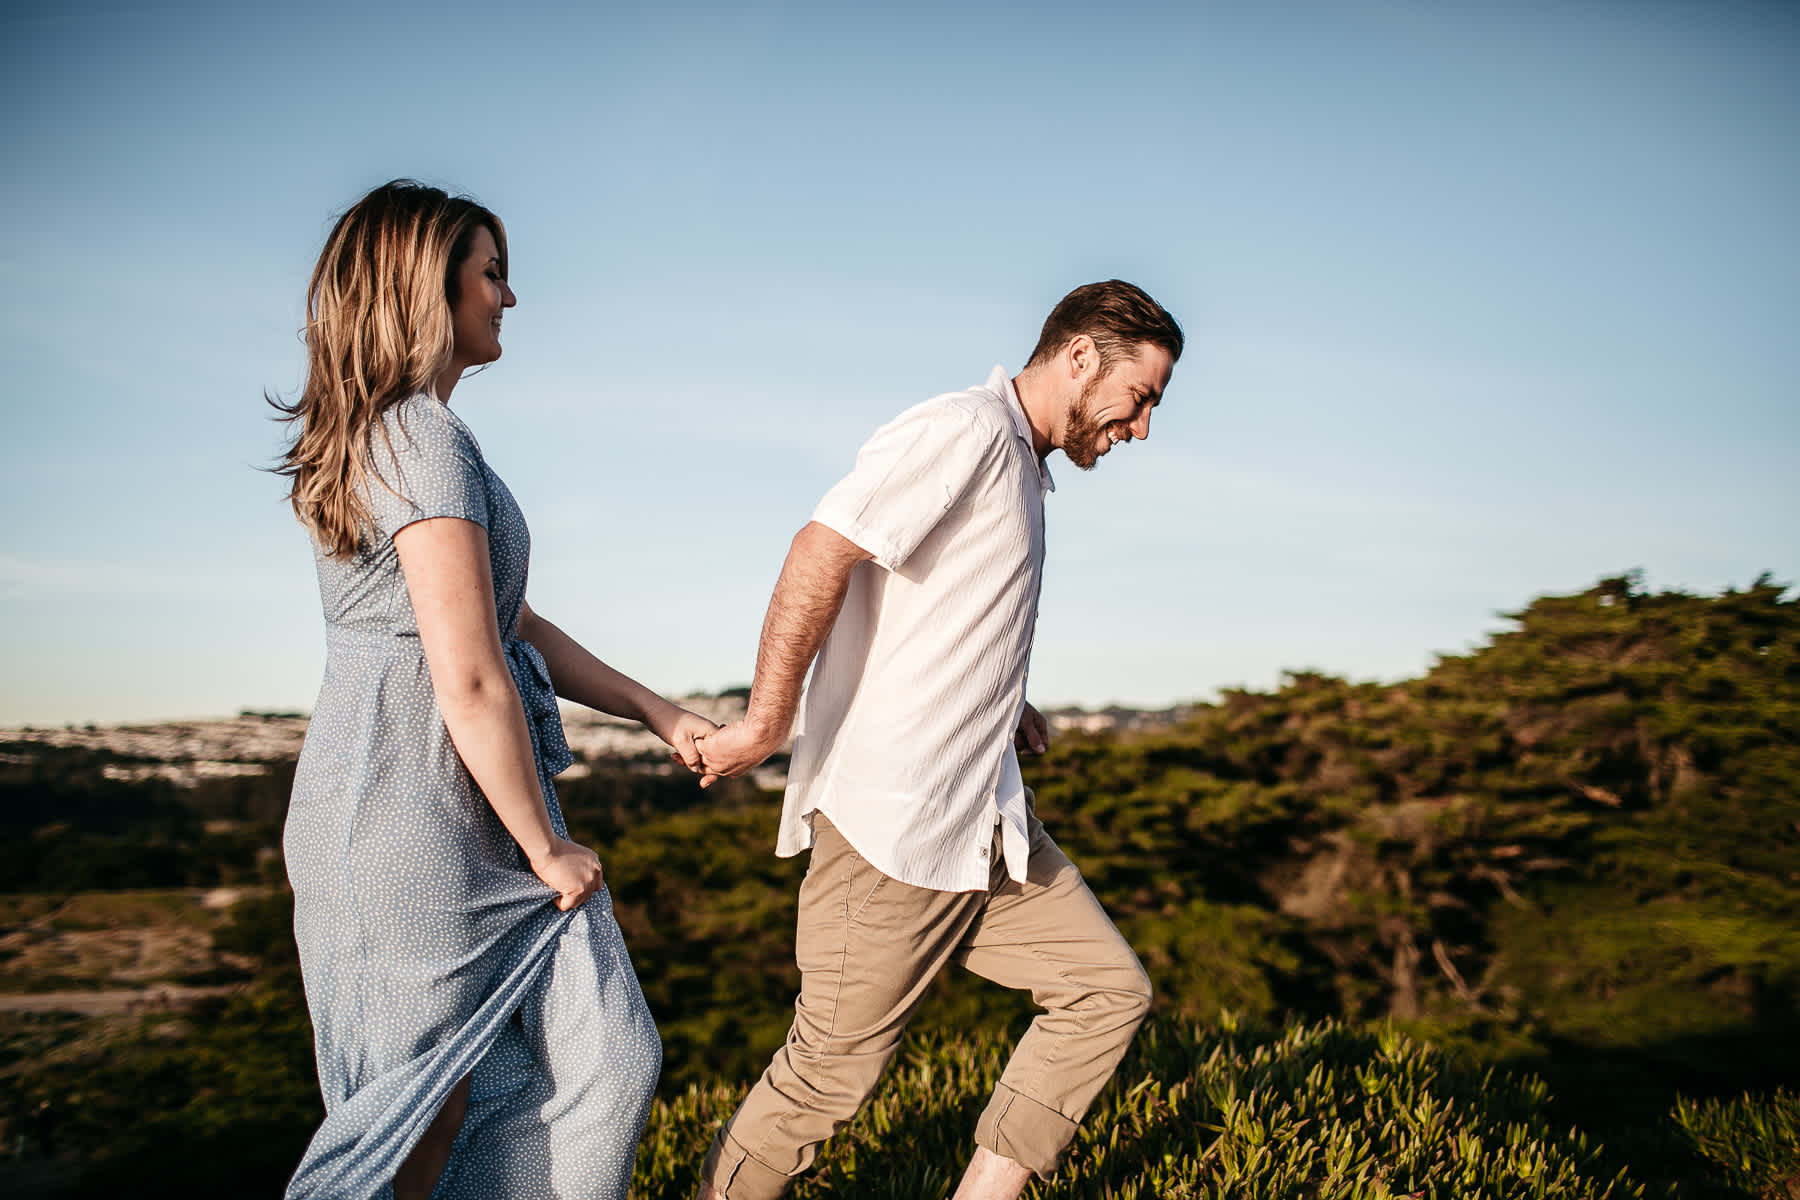 fort-funston-engagement-session-sunset-fun-beach-session-23